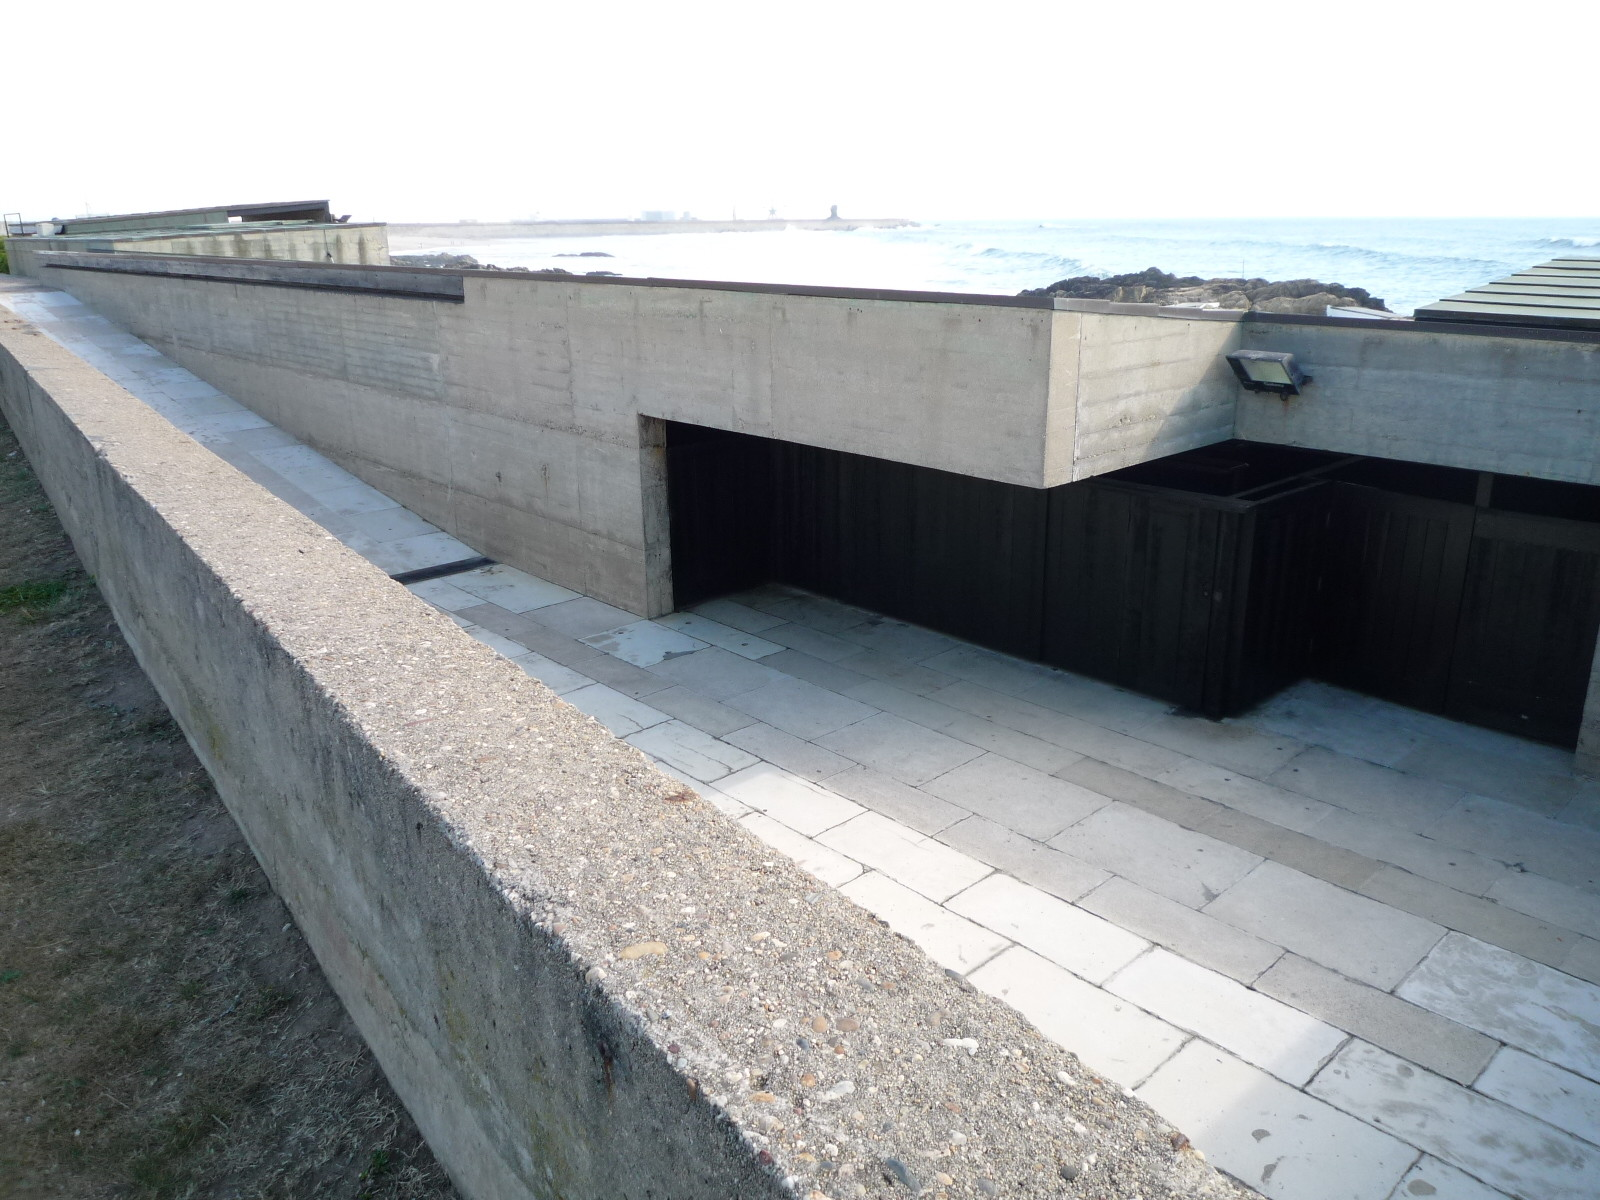 Gallery of ad classics le a swimming pools lvaro siza vieira 15 for Alvaro siza leca swimming pools